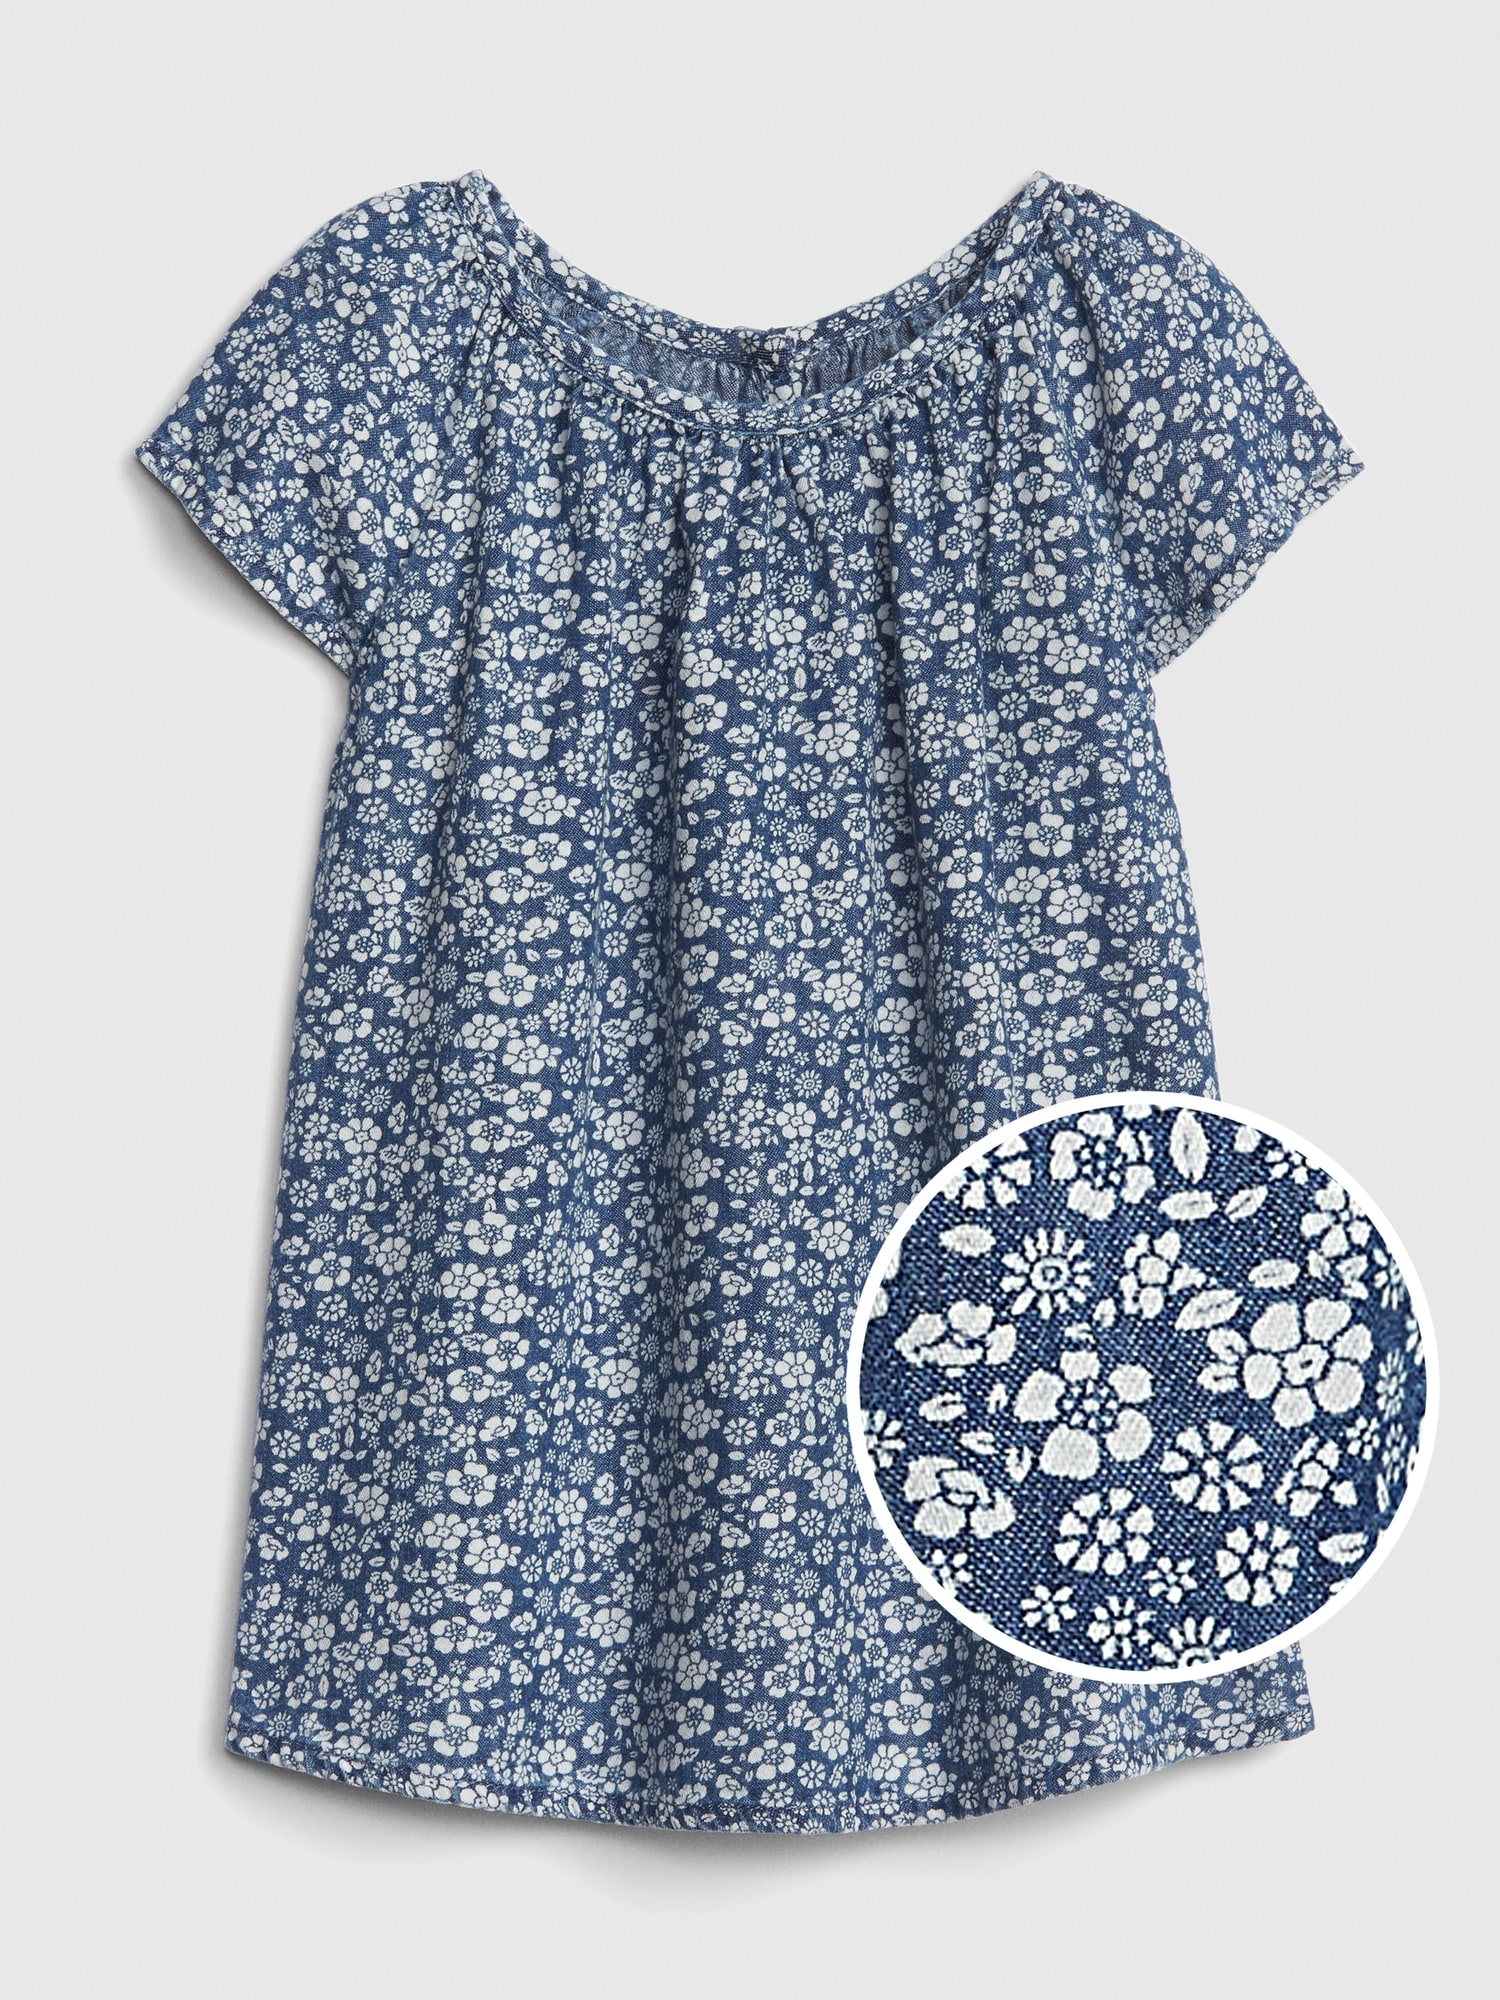 62016f32227 Floral Denim Dress